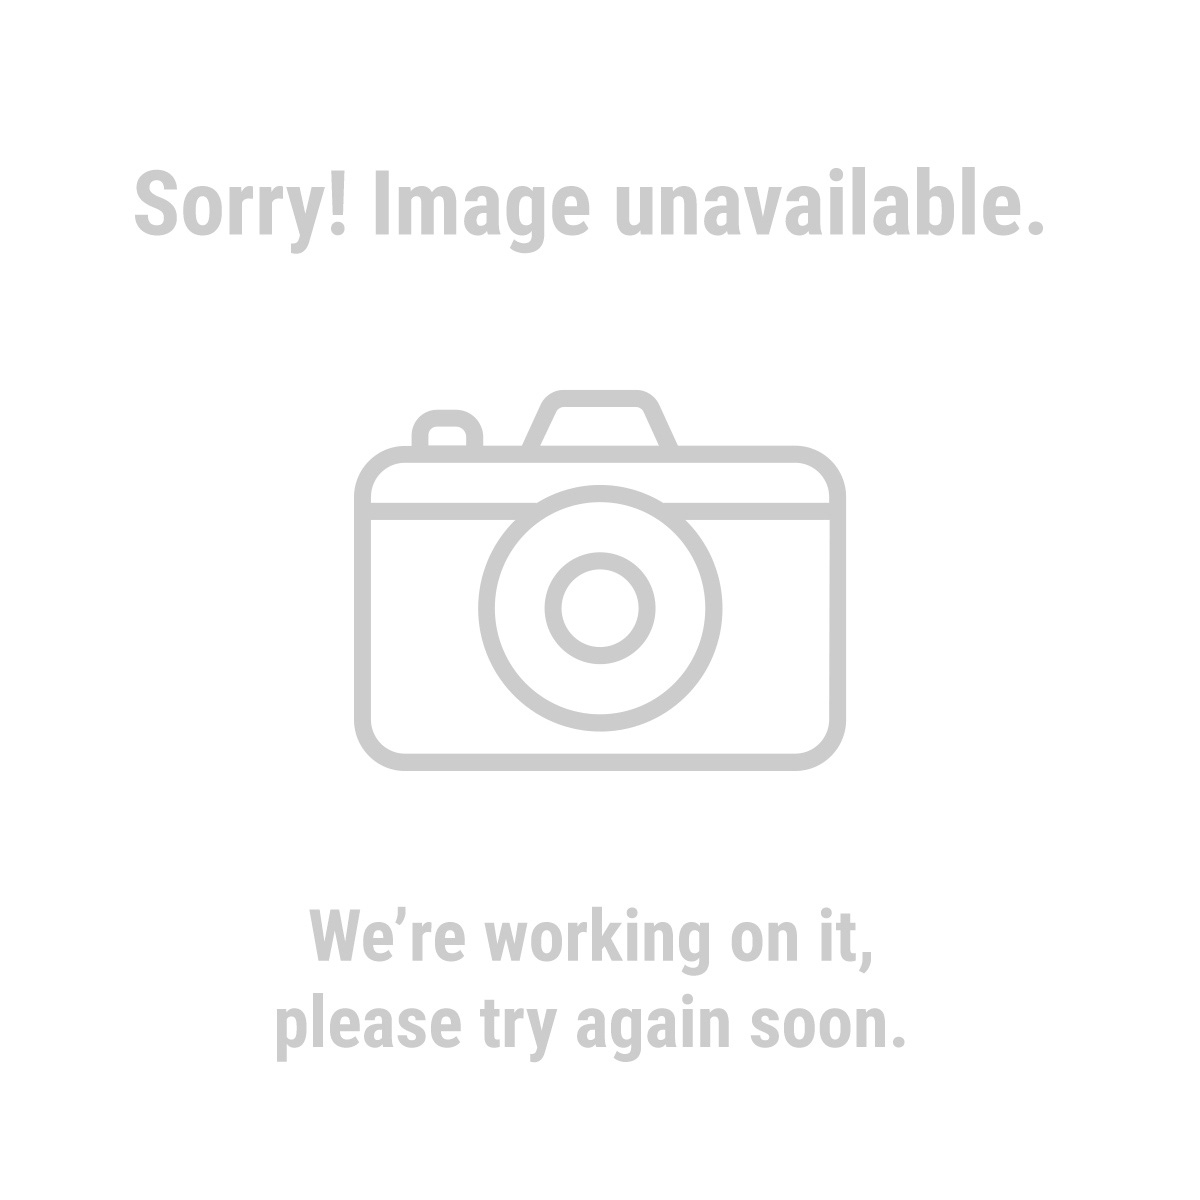 HFT 39343 150 Ft. Extension Cord Reel